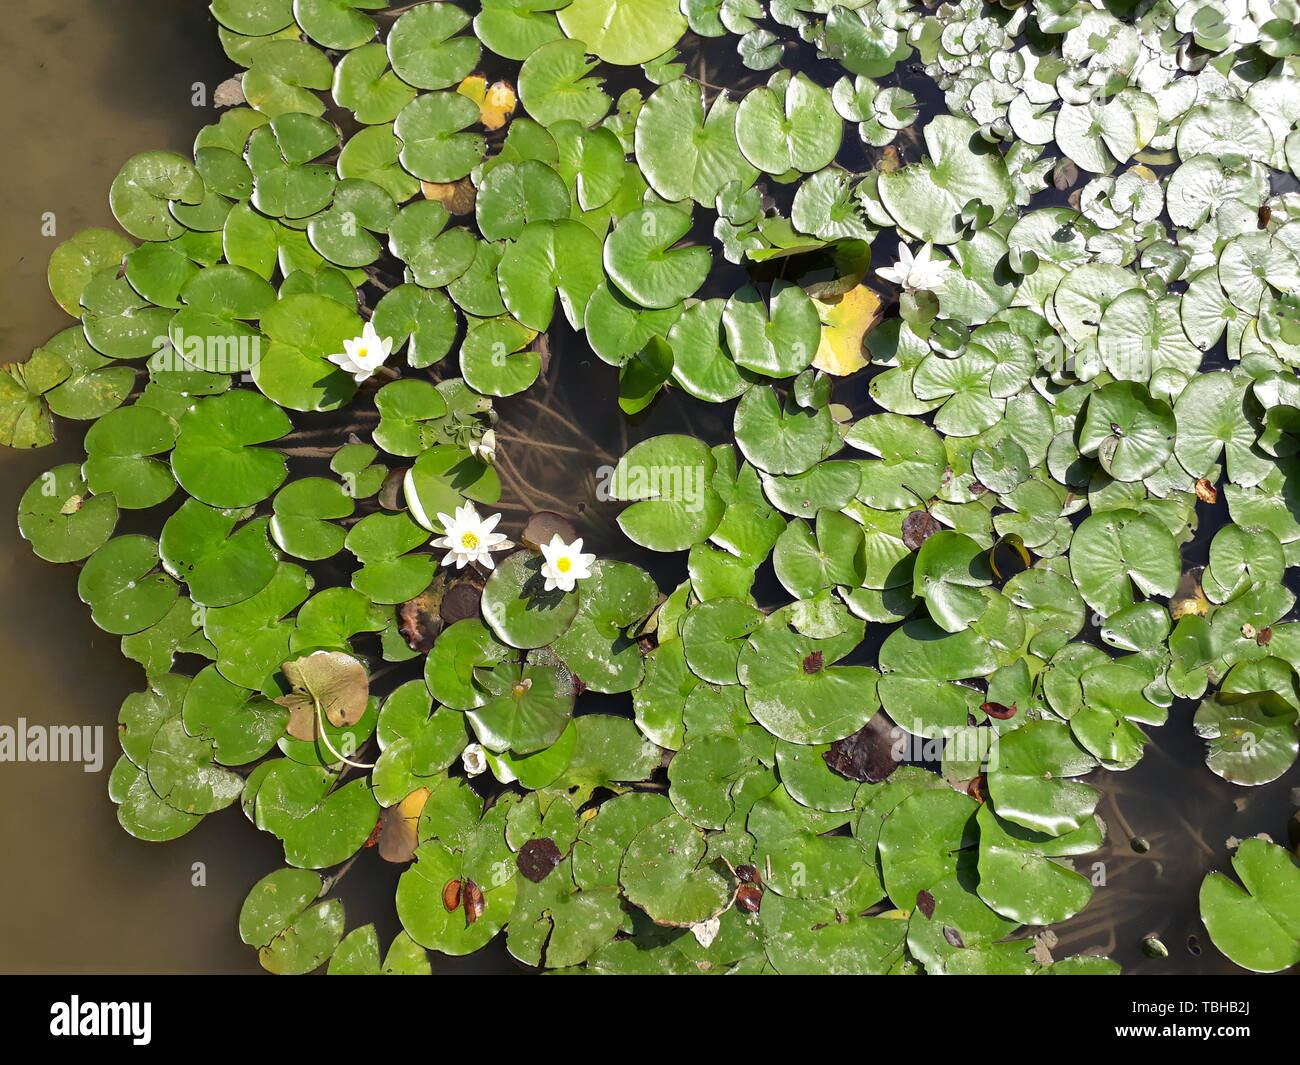 Lake covered with water lilies in bloom and large green leaves. Stock Photo